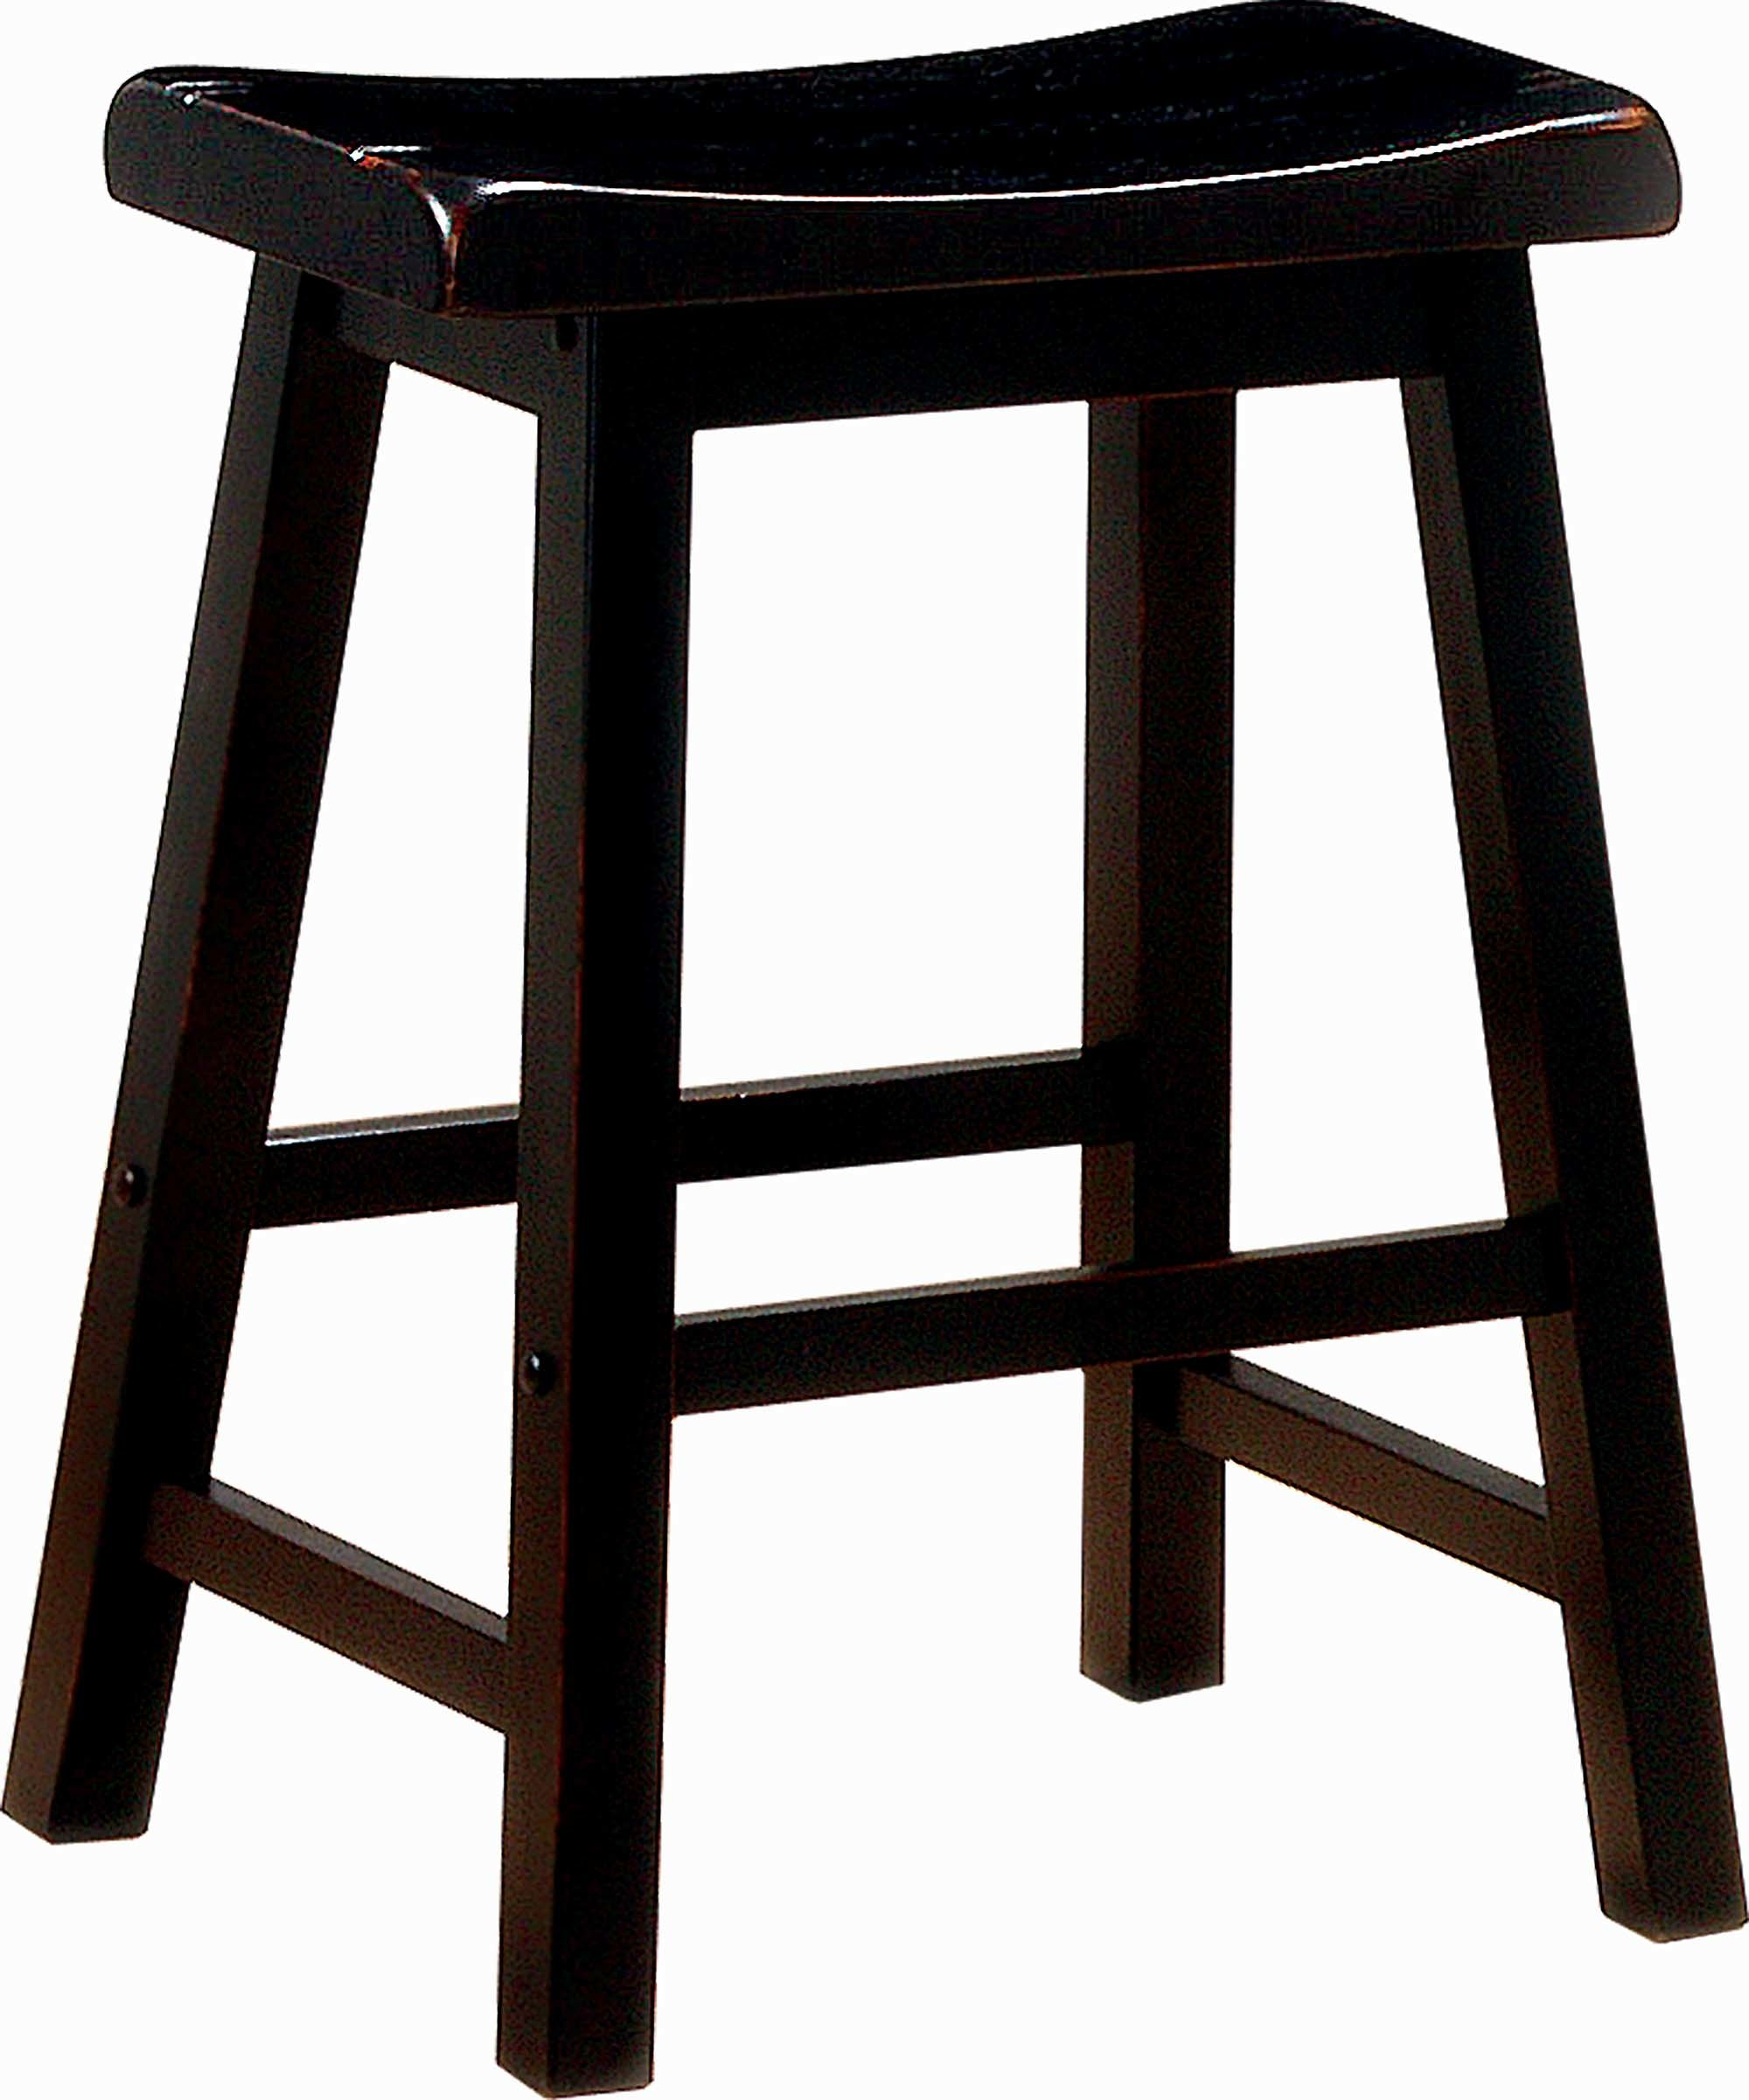 Coaster Cs019 Transitional Black Counter Height Stool Bar Stools